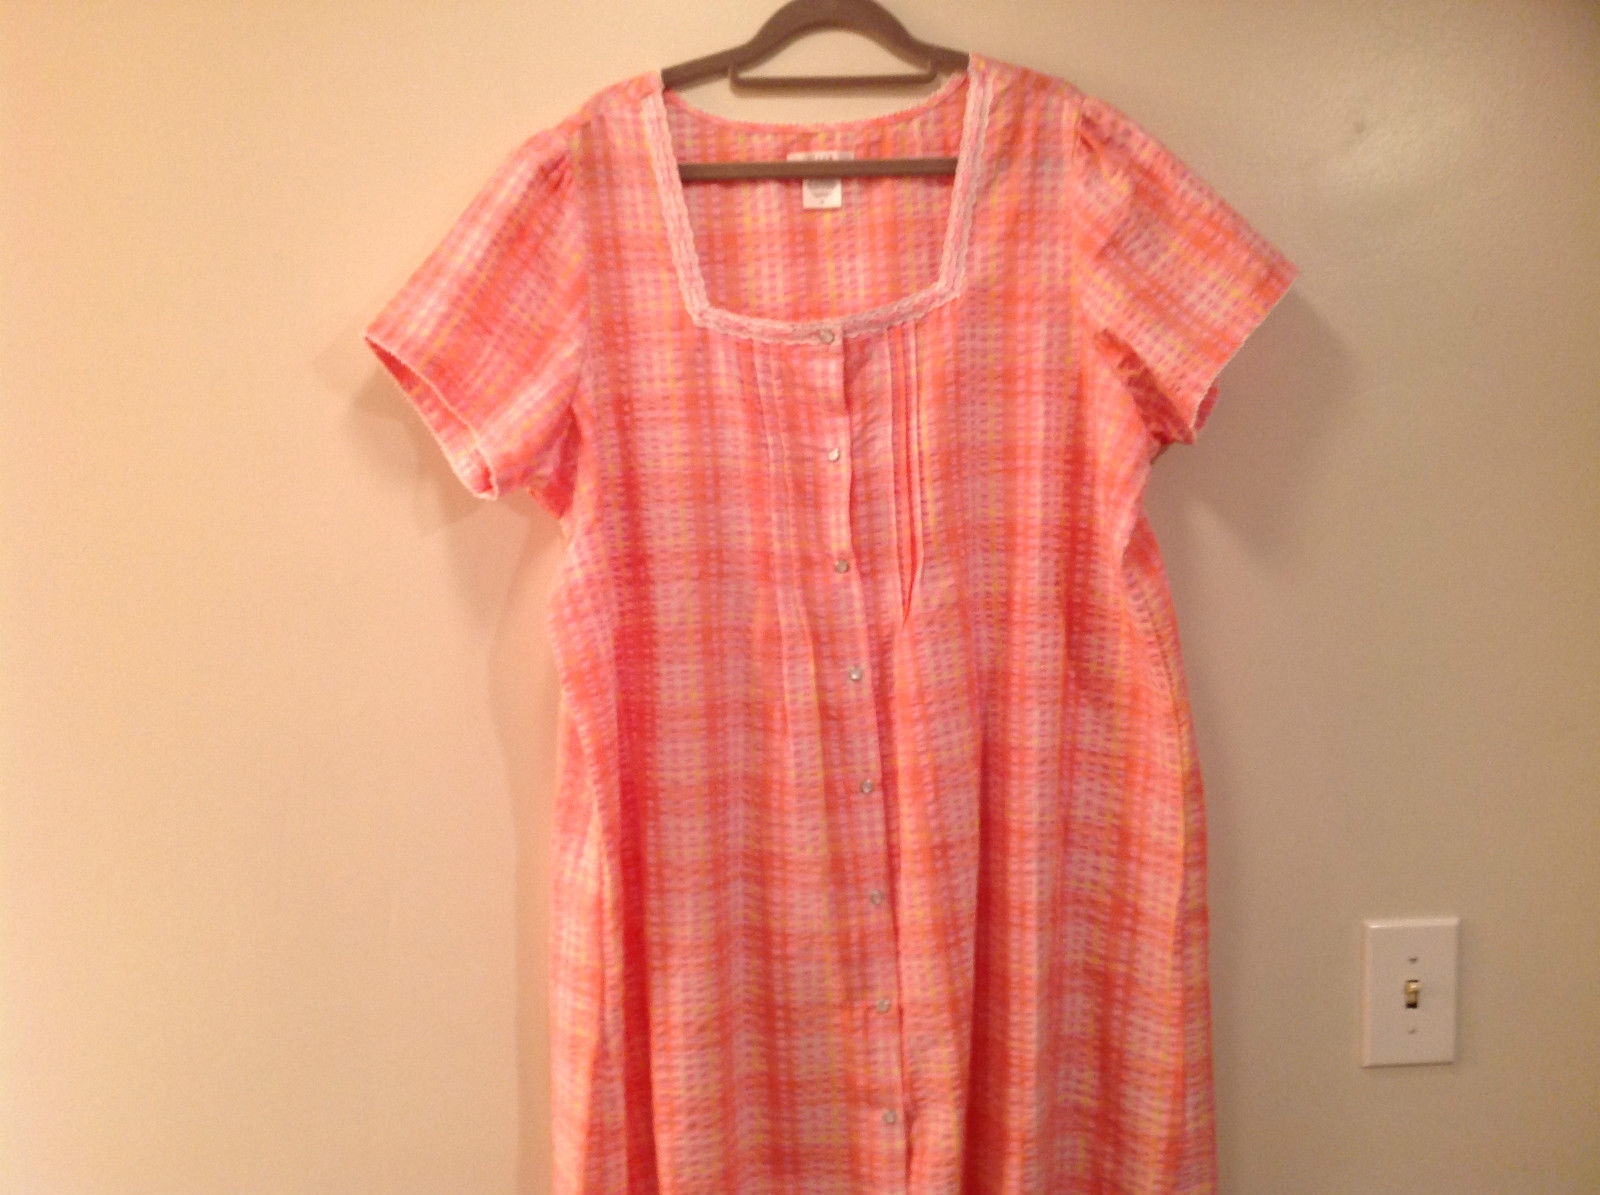 Pink Orange Button Down Short Sleeve Dress Light Material Size 1X Cotton Blend